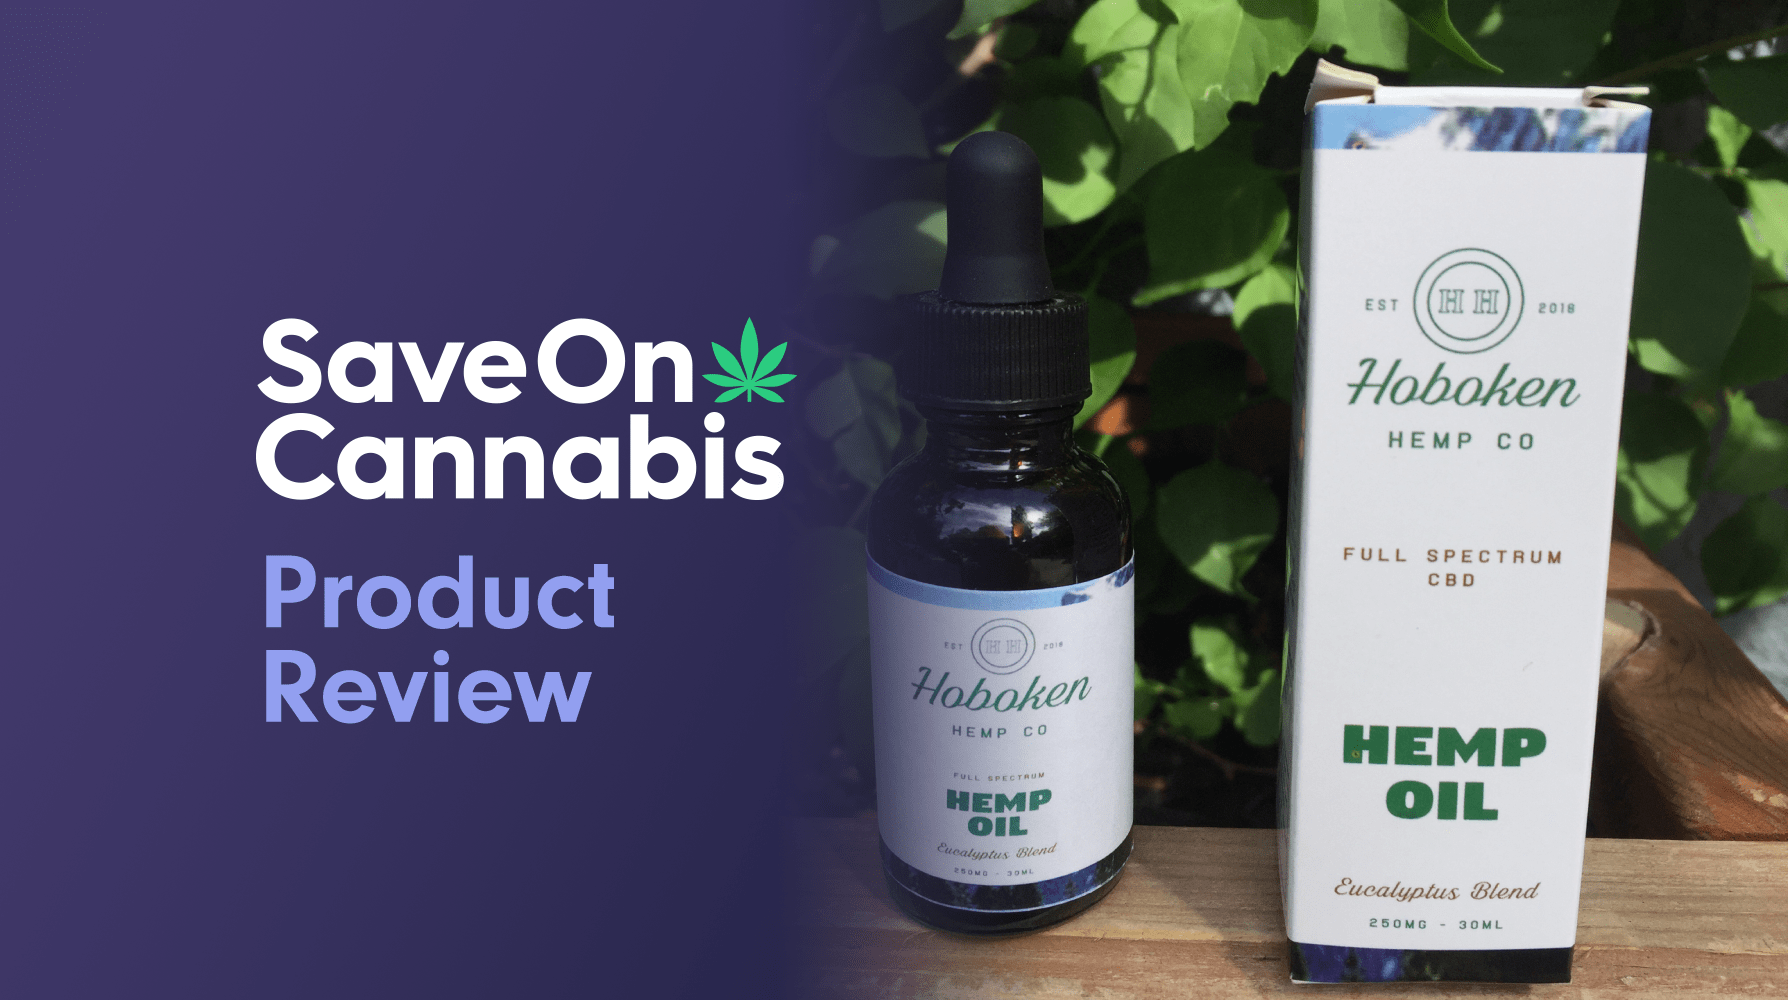 hoboken hempco eucalyptusblend cbd oil 250 mg website